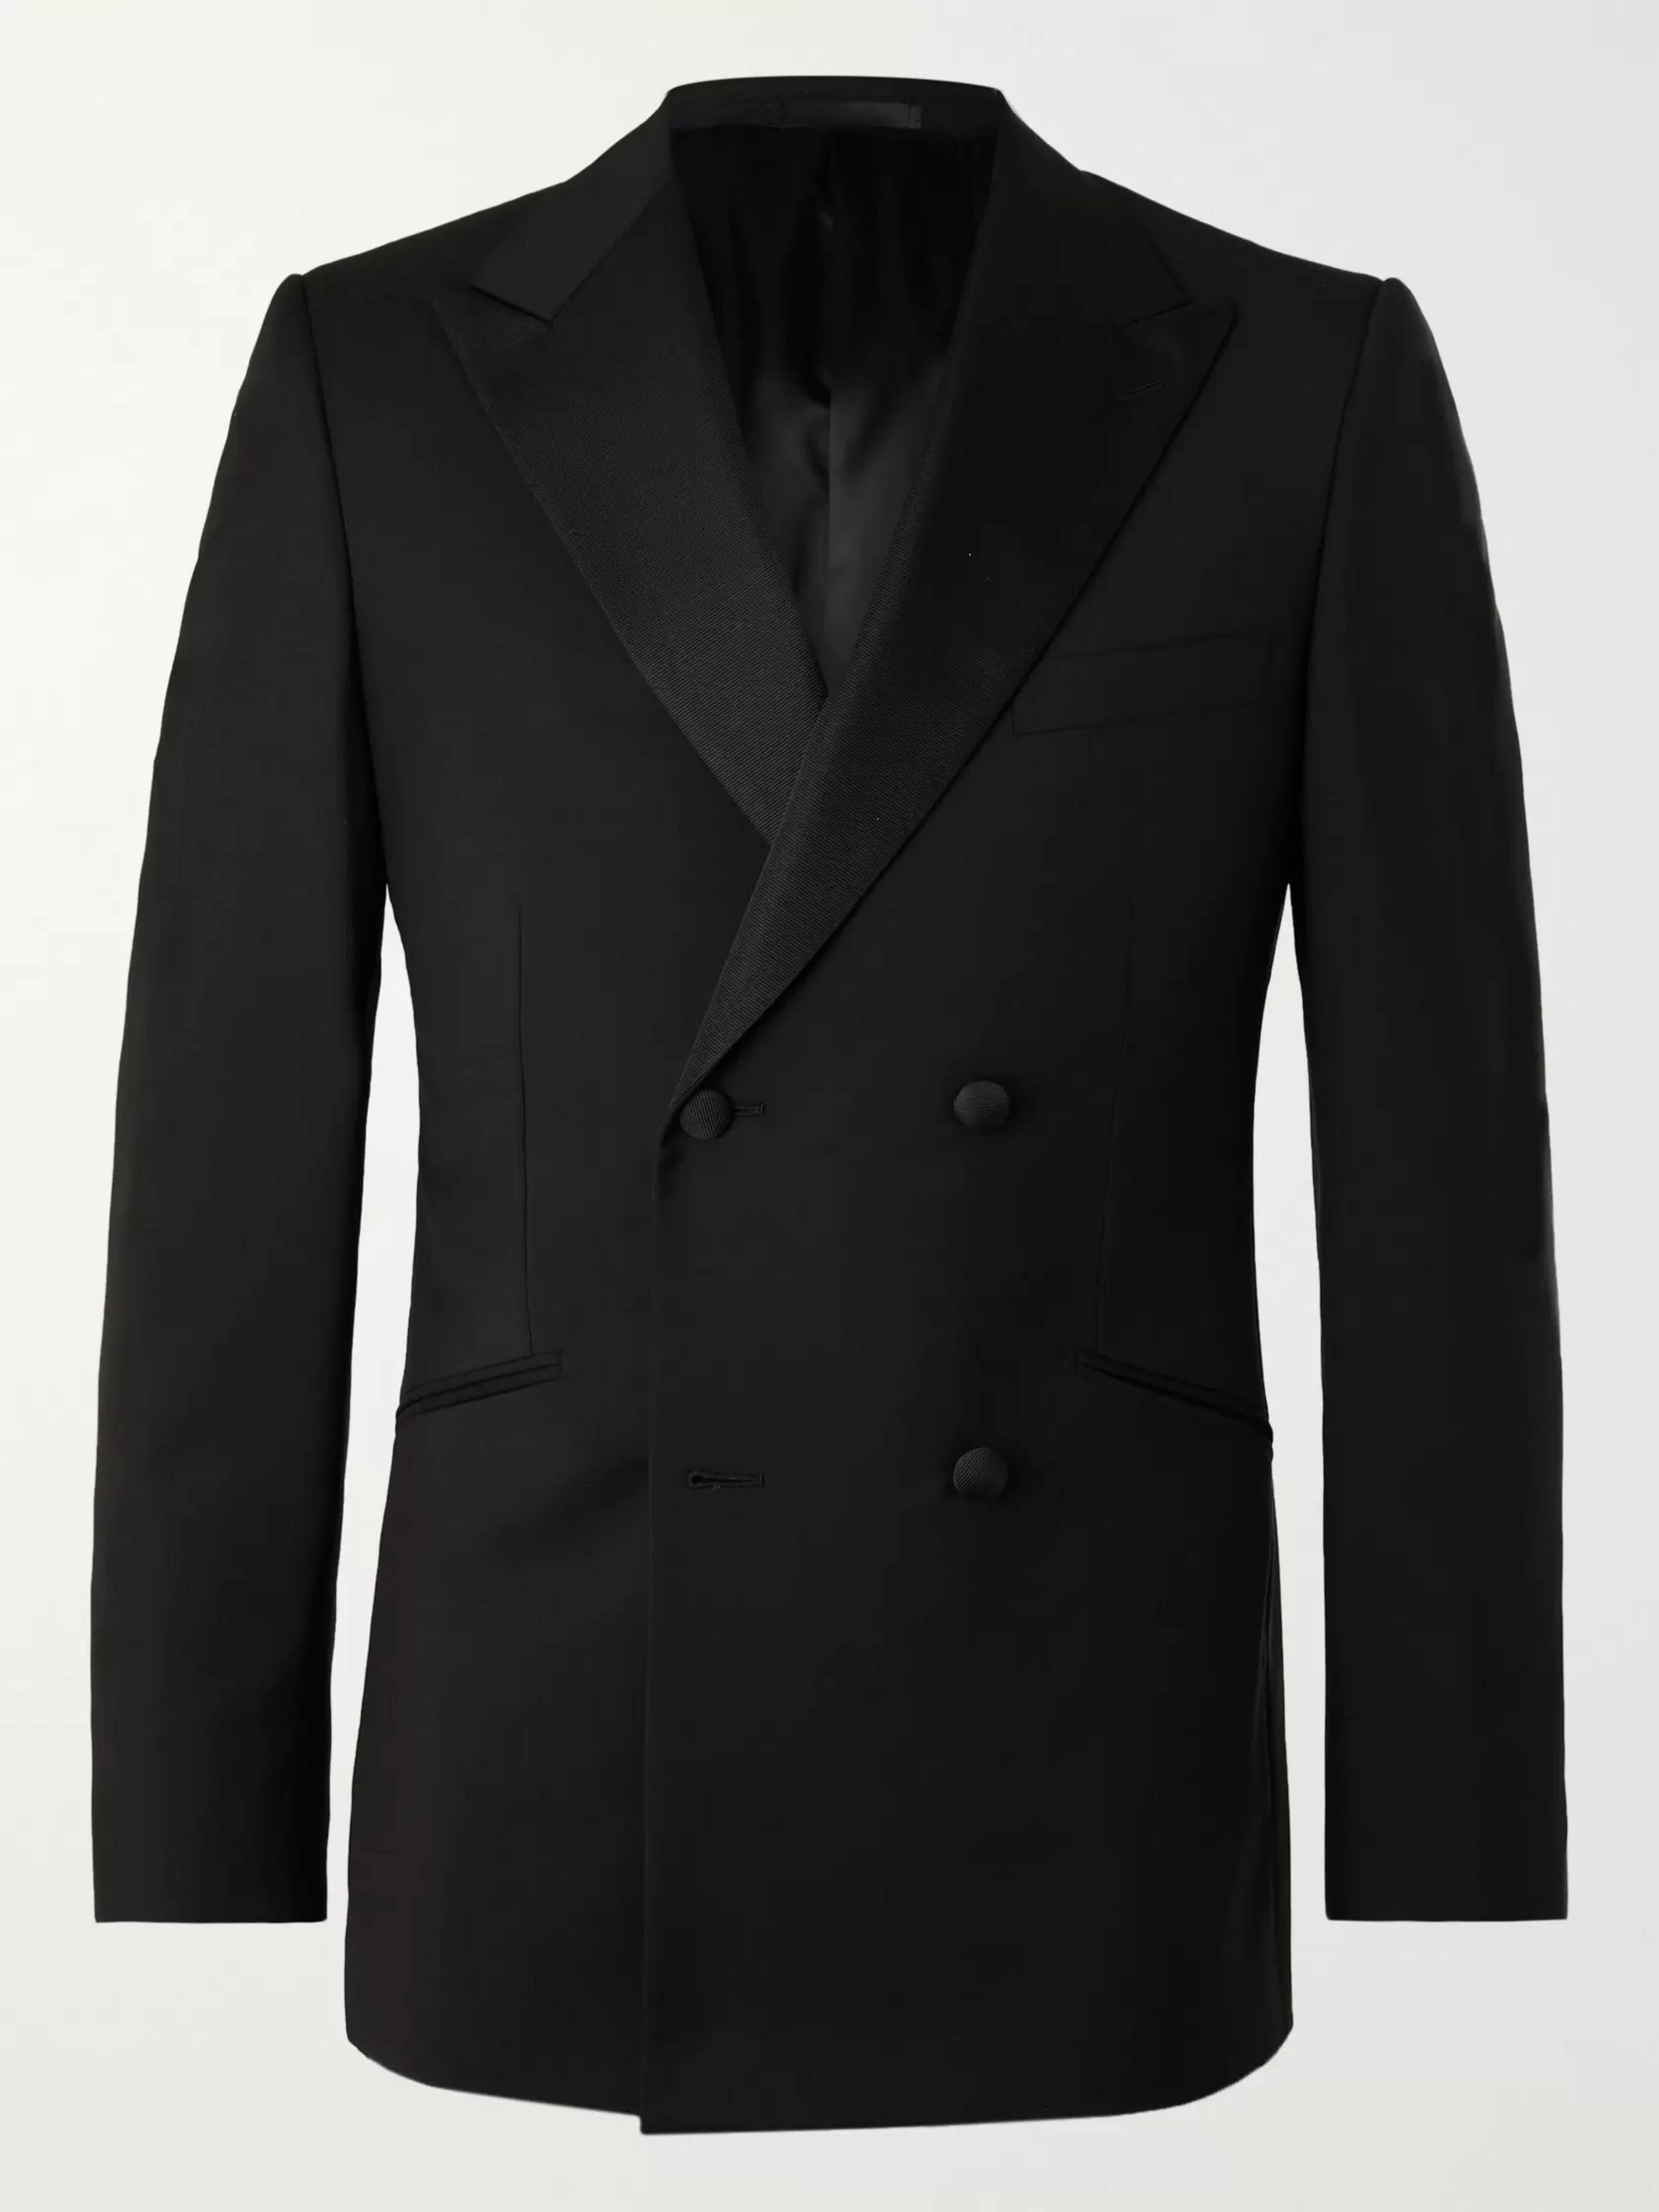 Kingsman Slim-Fit Double-Breasted Grosgrain-Trimmed Wool and Mohair-Blend Tuxedo Jacket